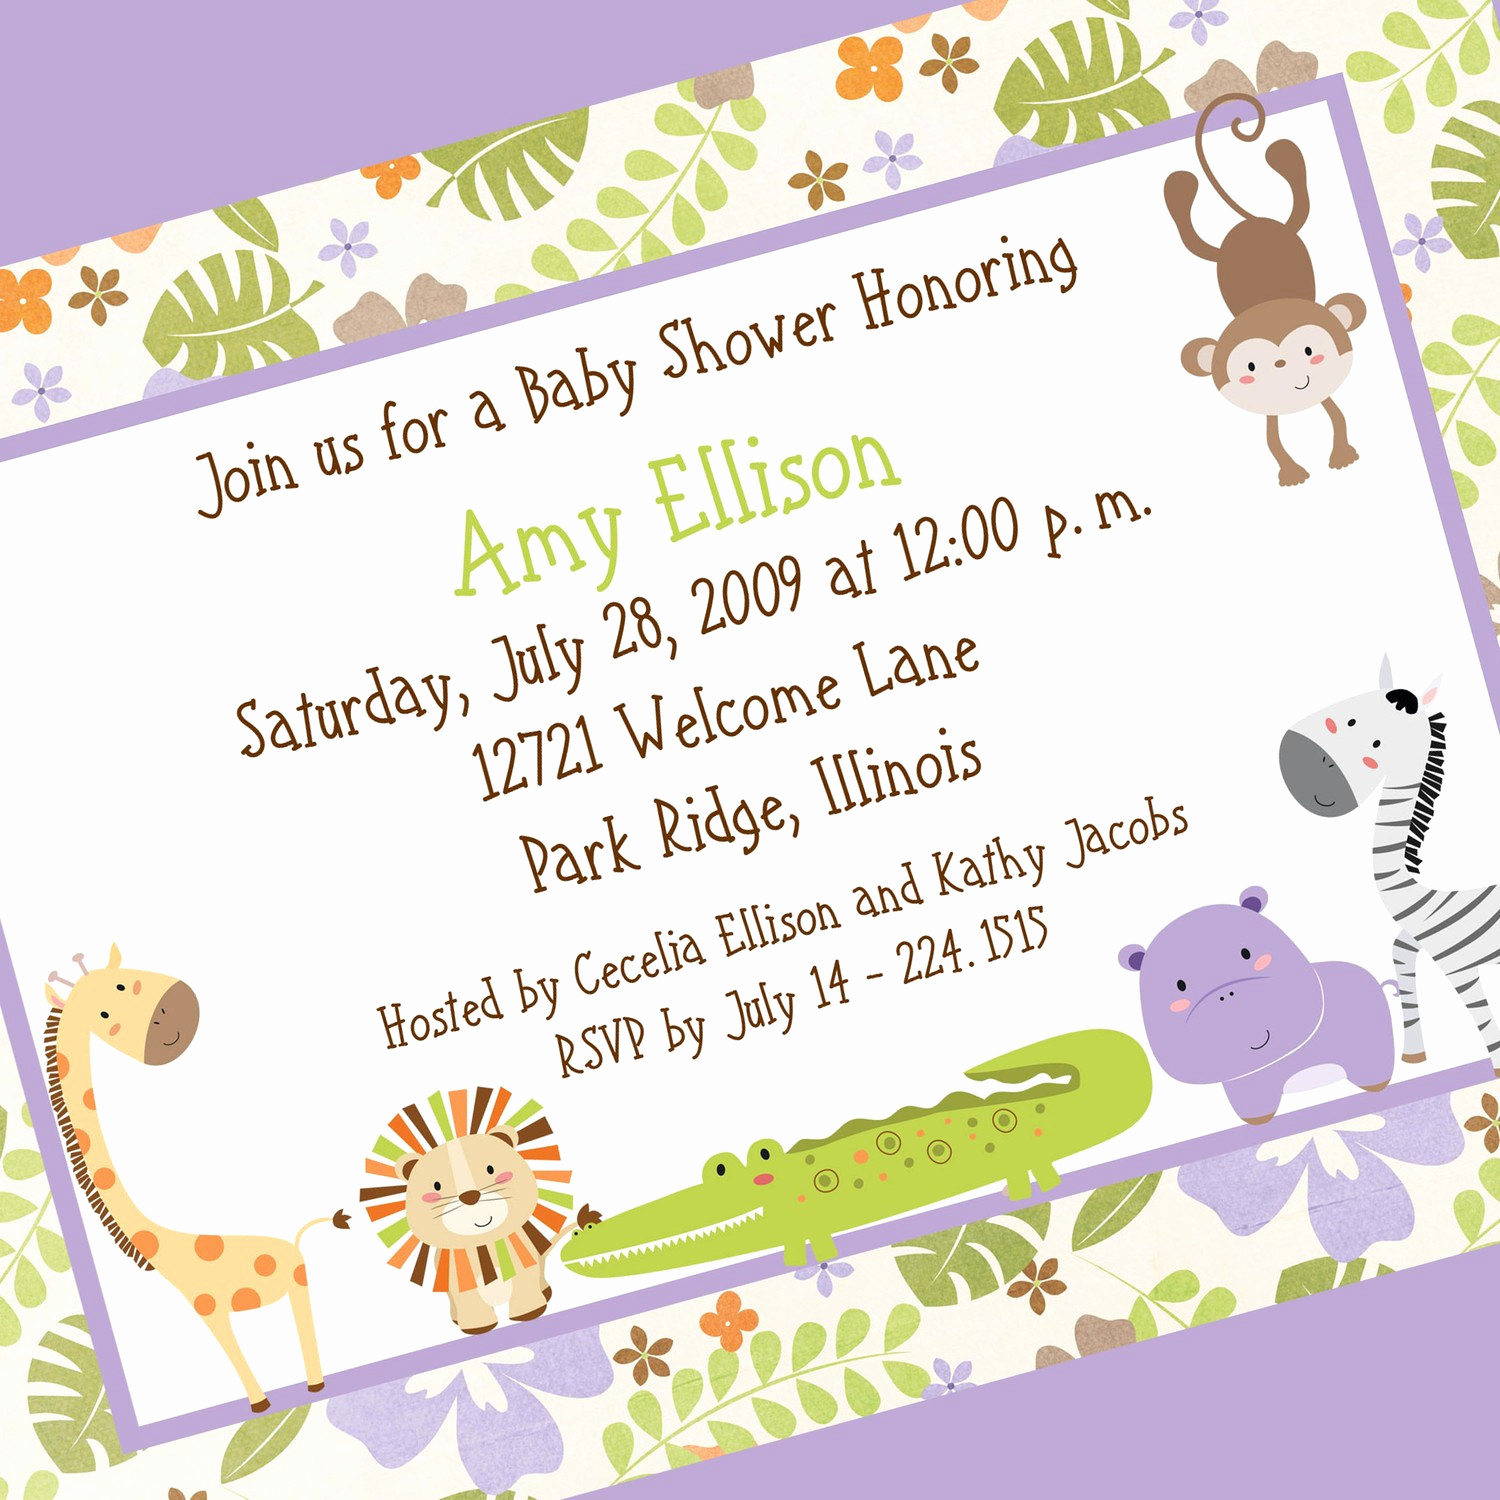 Baby Shower Invitation Wording Best Of Floral Jungle Baby Shower Invitation Printable by